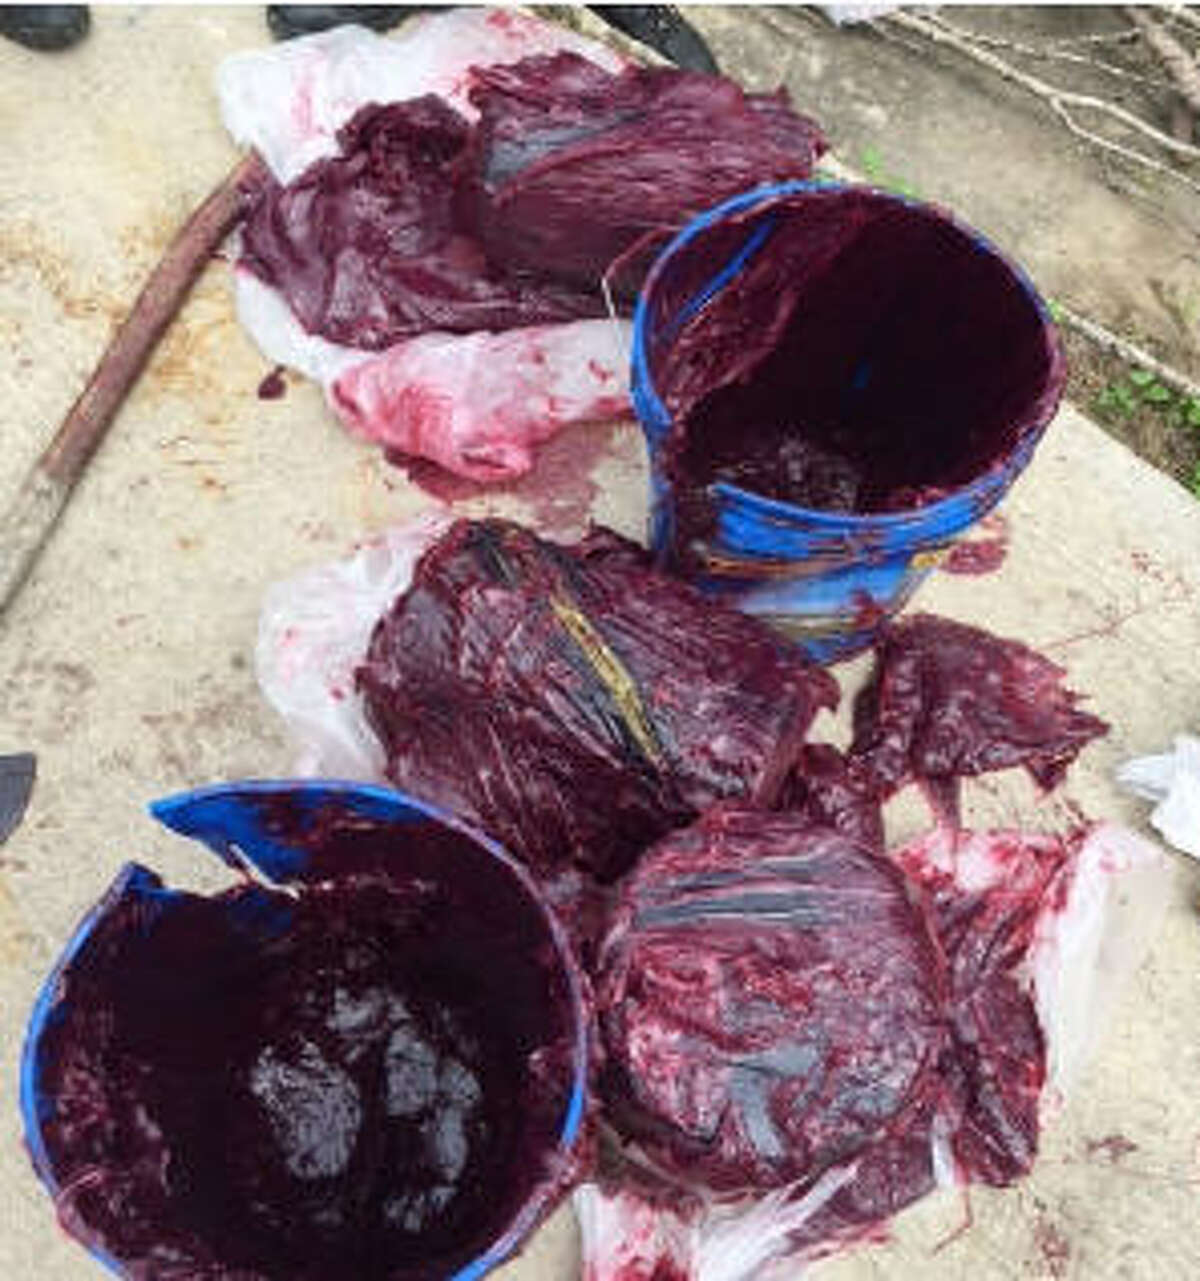 Greasy buckets bust Border Patrol agents said two men tried to sneak $459,000 worth of cocaine and marijuana into the U.S. in buckets of grease. The drugs and men were turned over to the Drug Enforcement Administration.